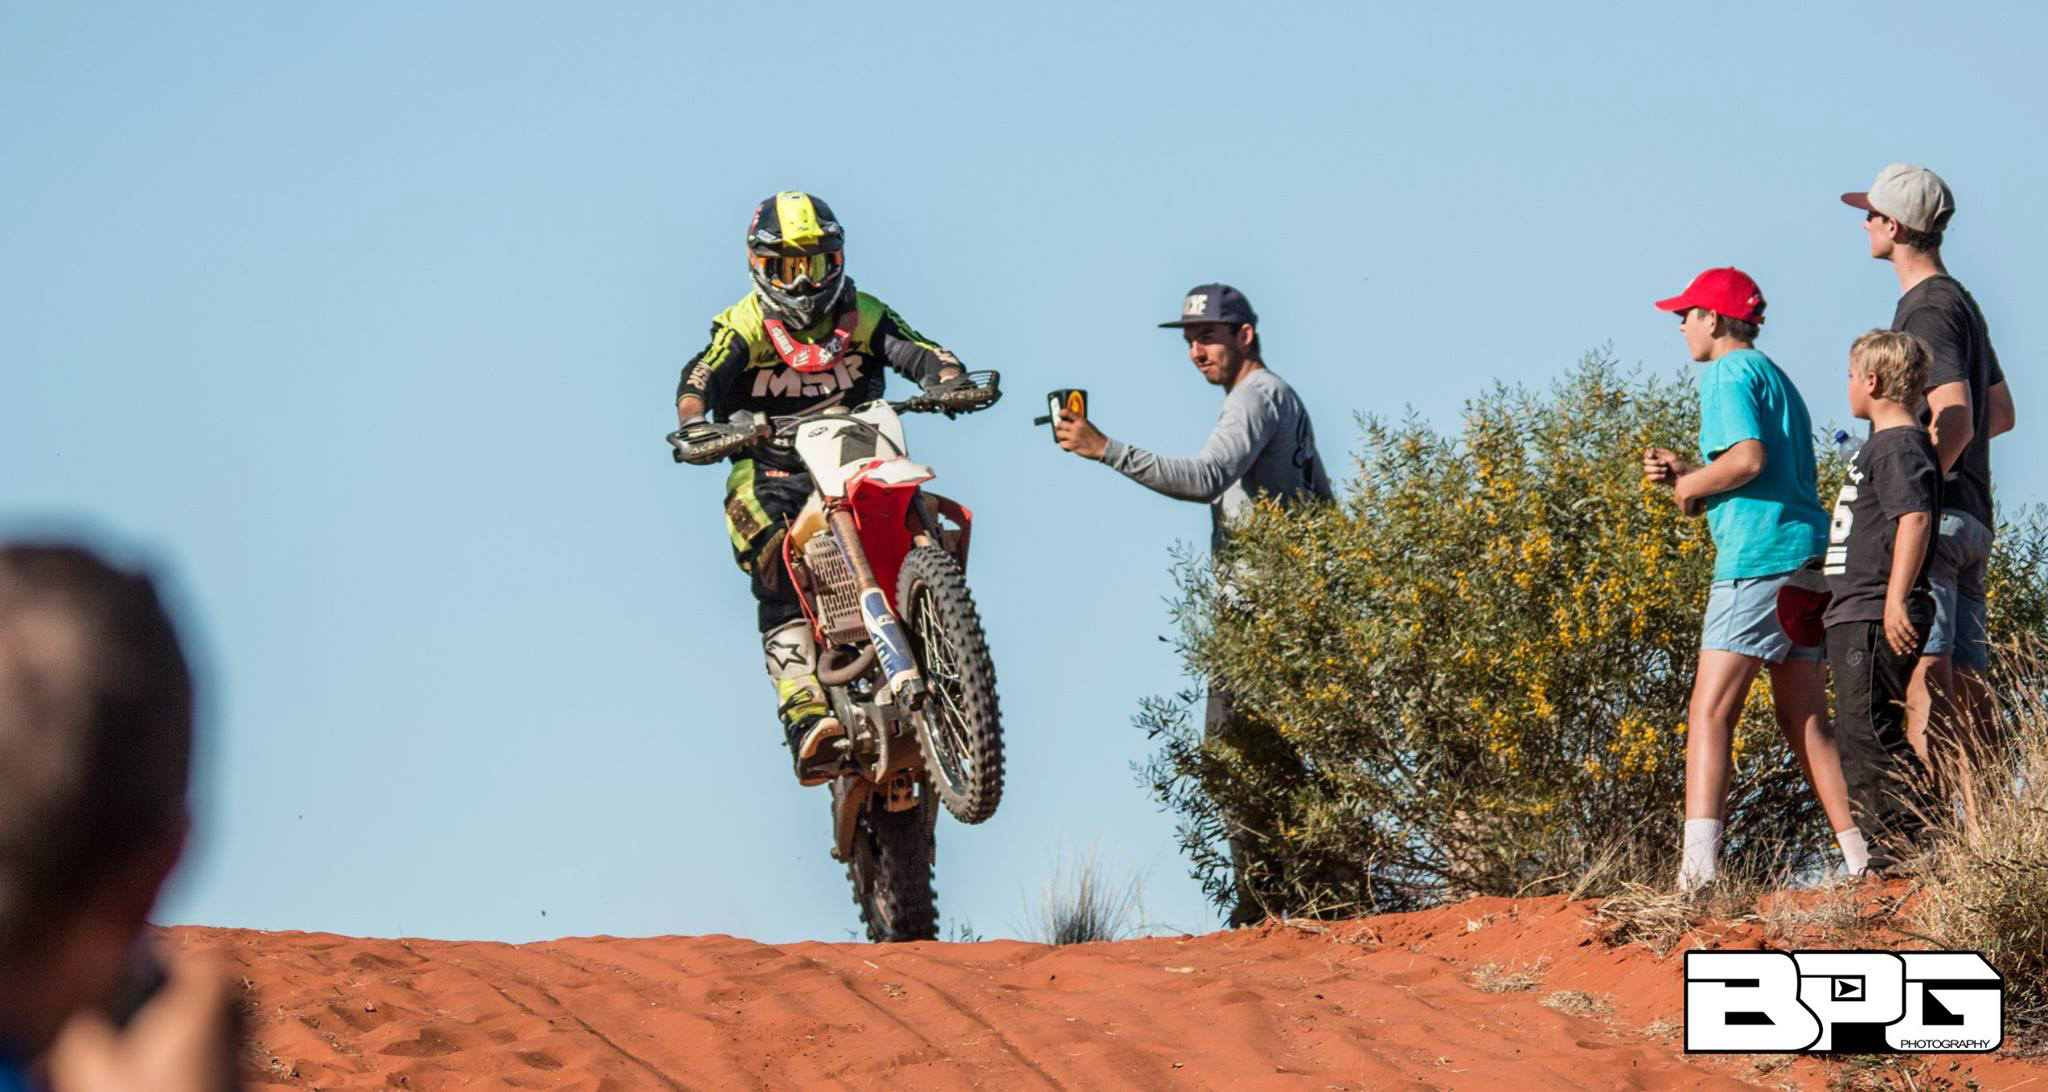 Desert Edge Race Team or DERT [the local Honda outfit] have been victorious in this event for the past five years so holding onto this title was paramount for seasoned campaigners and DERT rider Daymon Stokie.